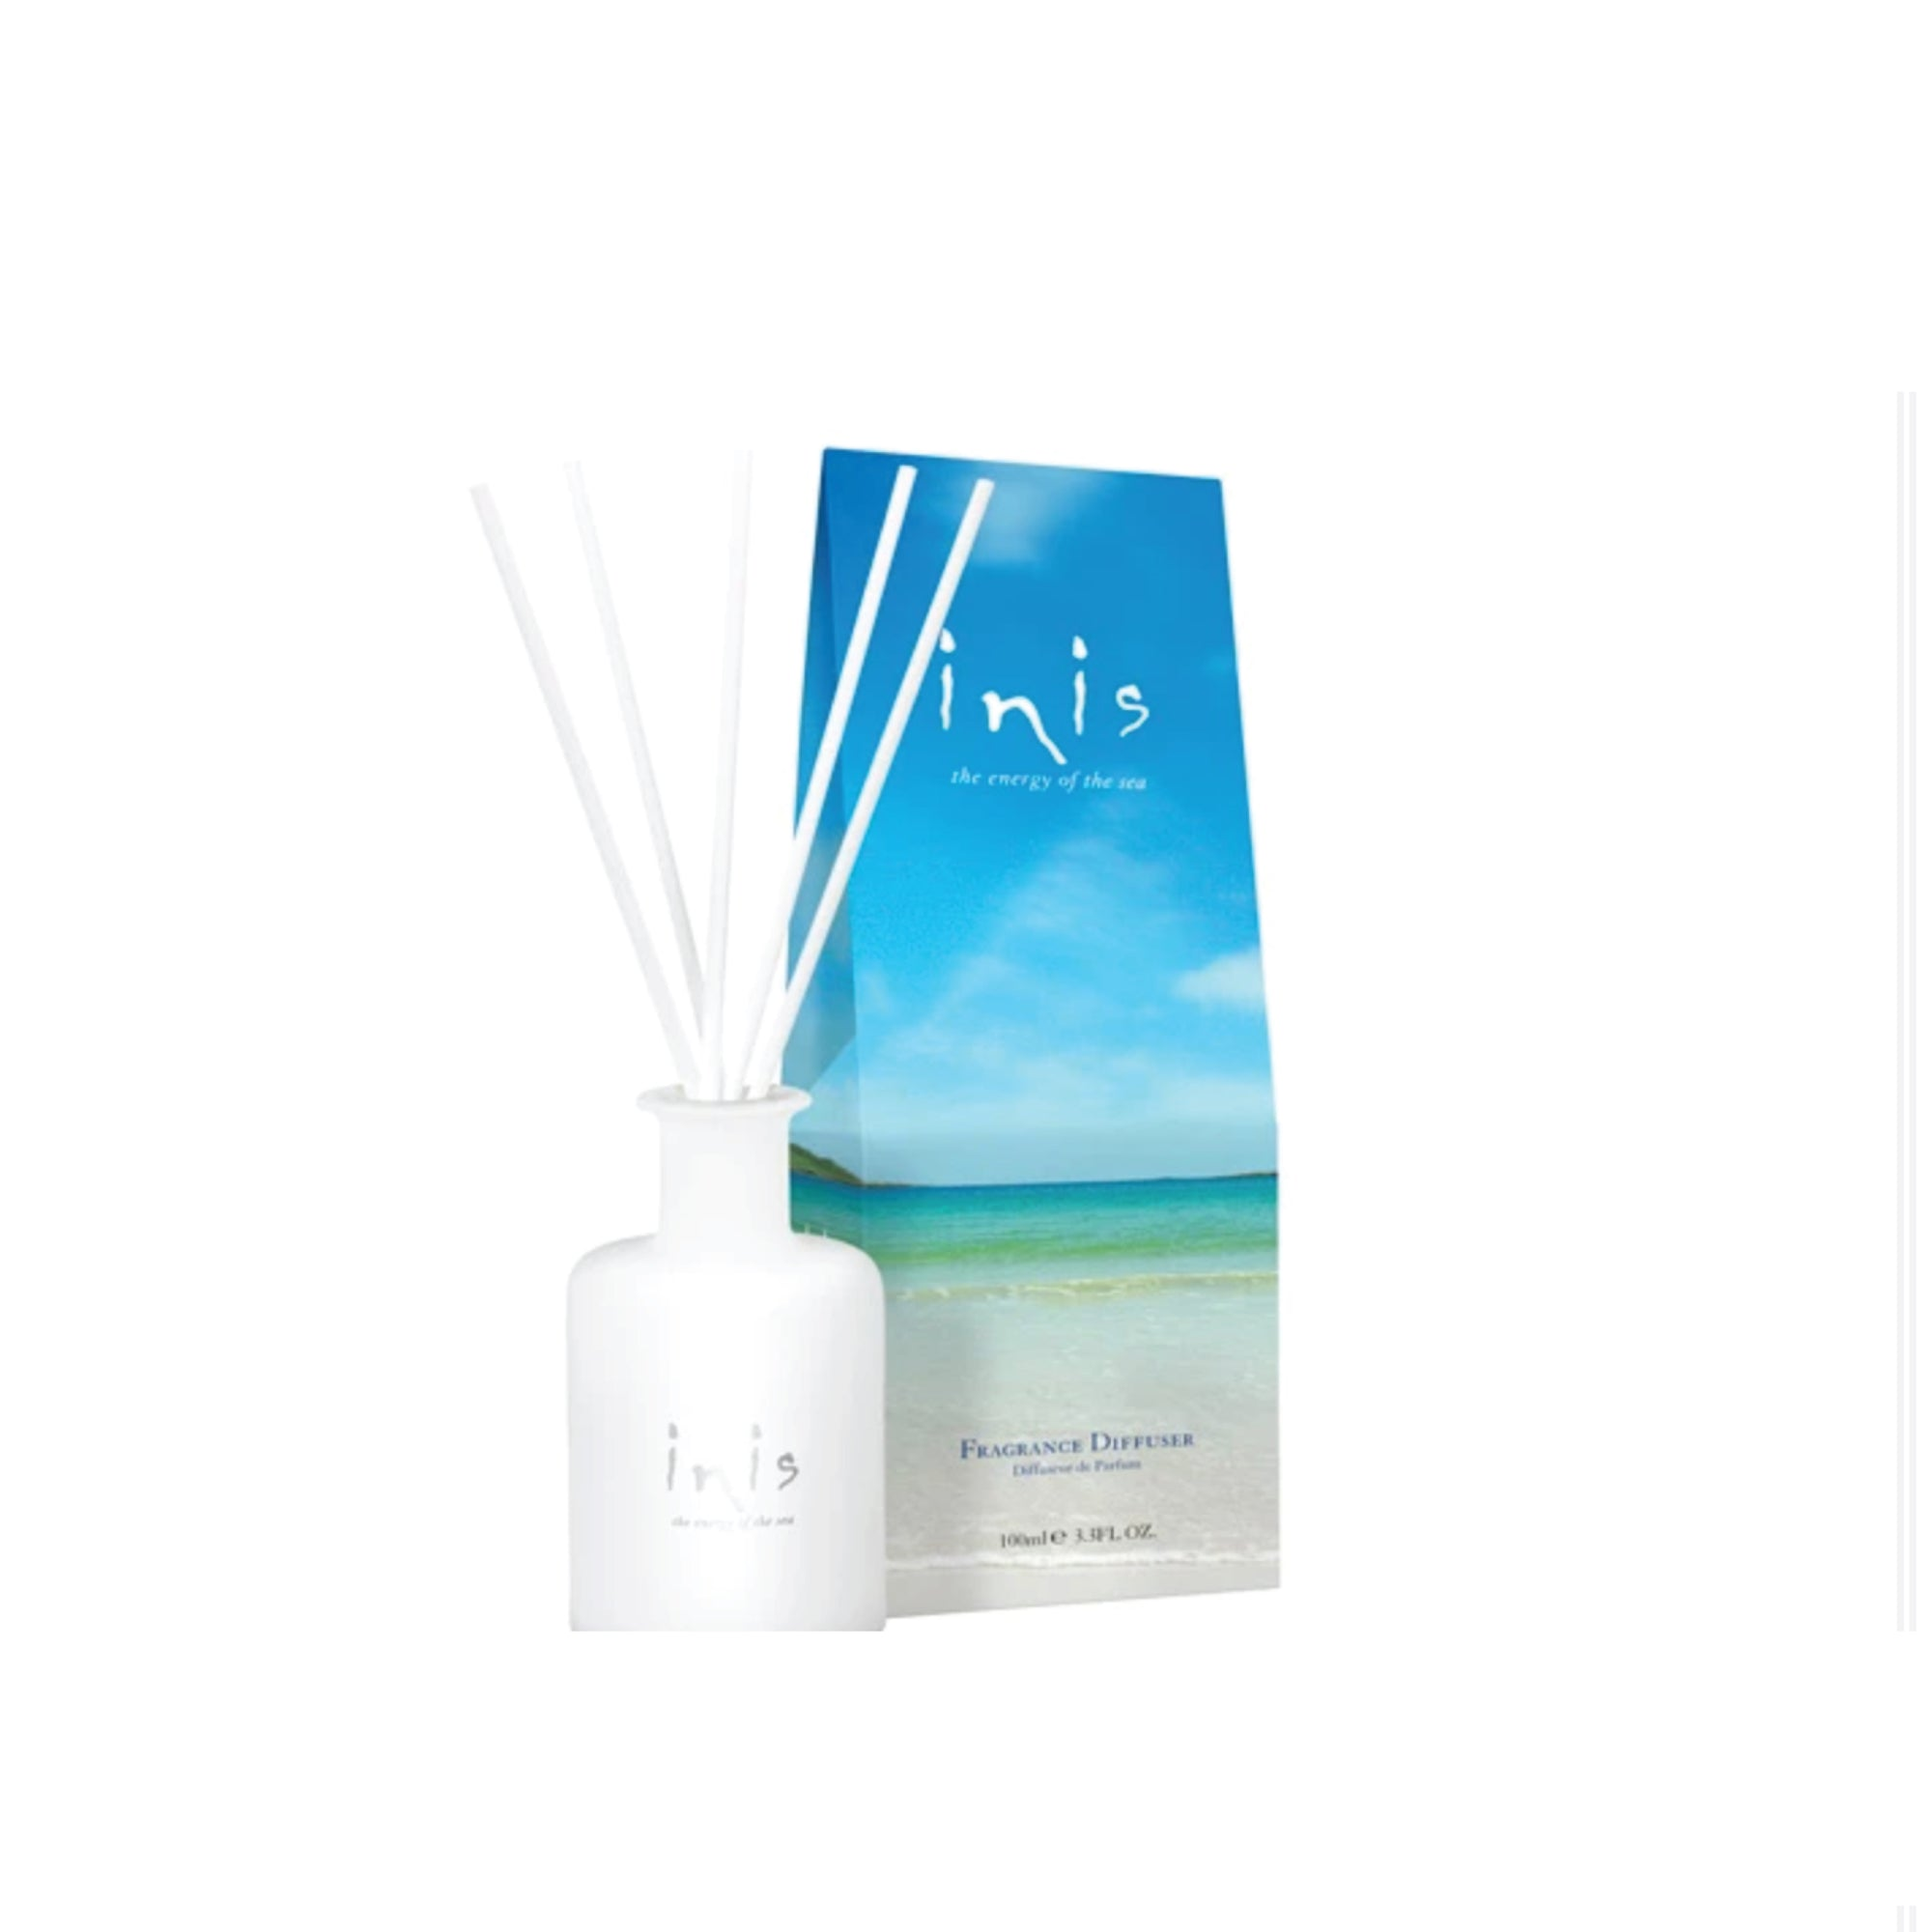 INIS THE ENERGY OF THE SEA FRAGRANCE DIFFUSER - 100ML/3.3 FL. OZ